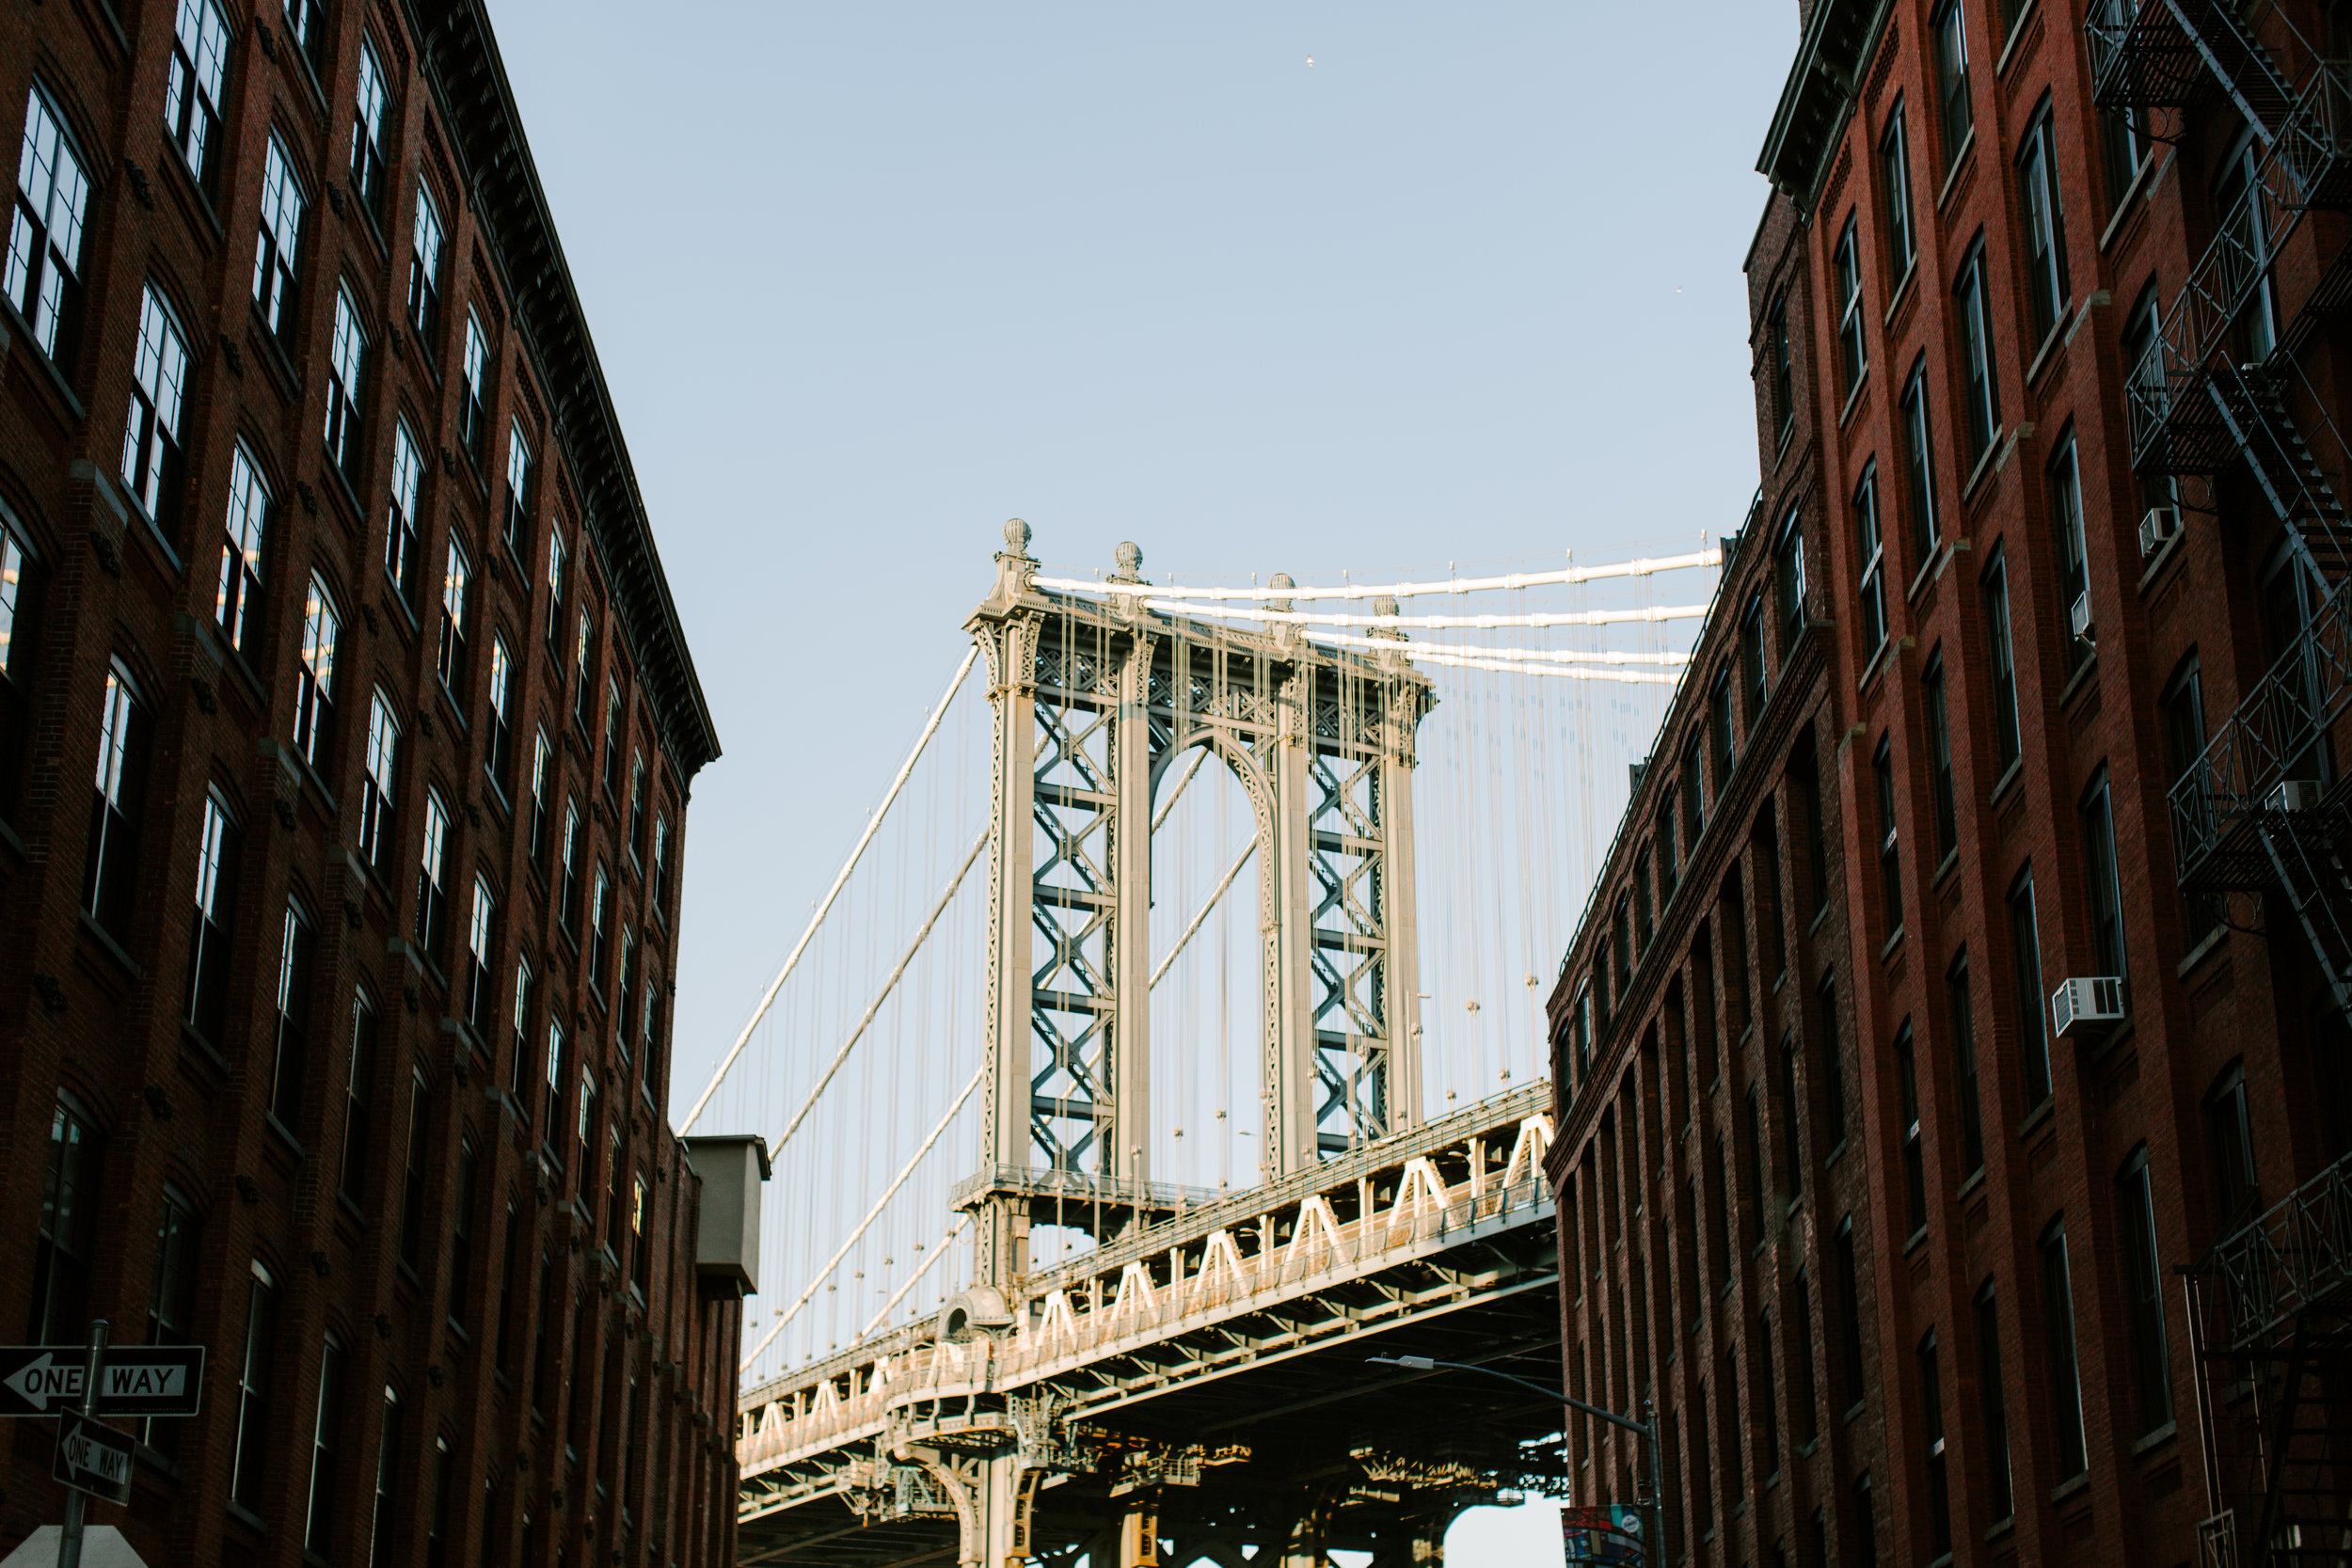 shot of the brooklyn bridge